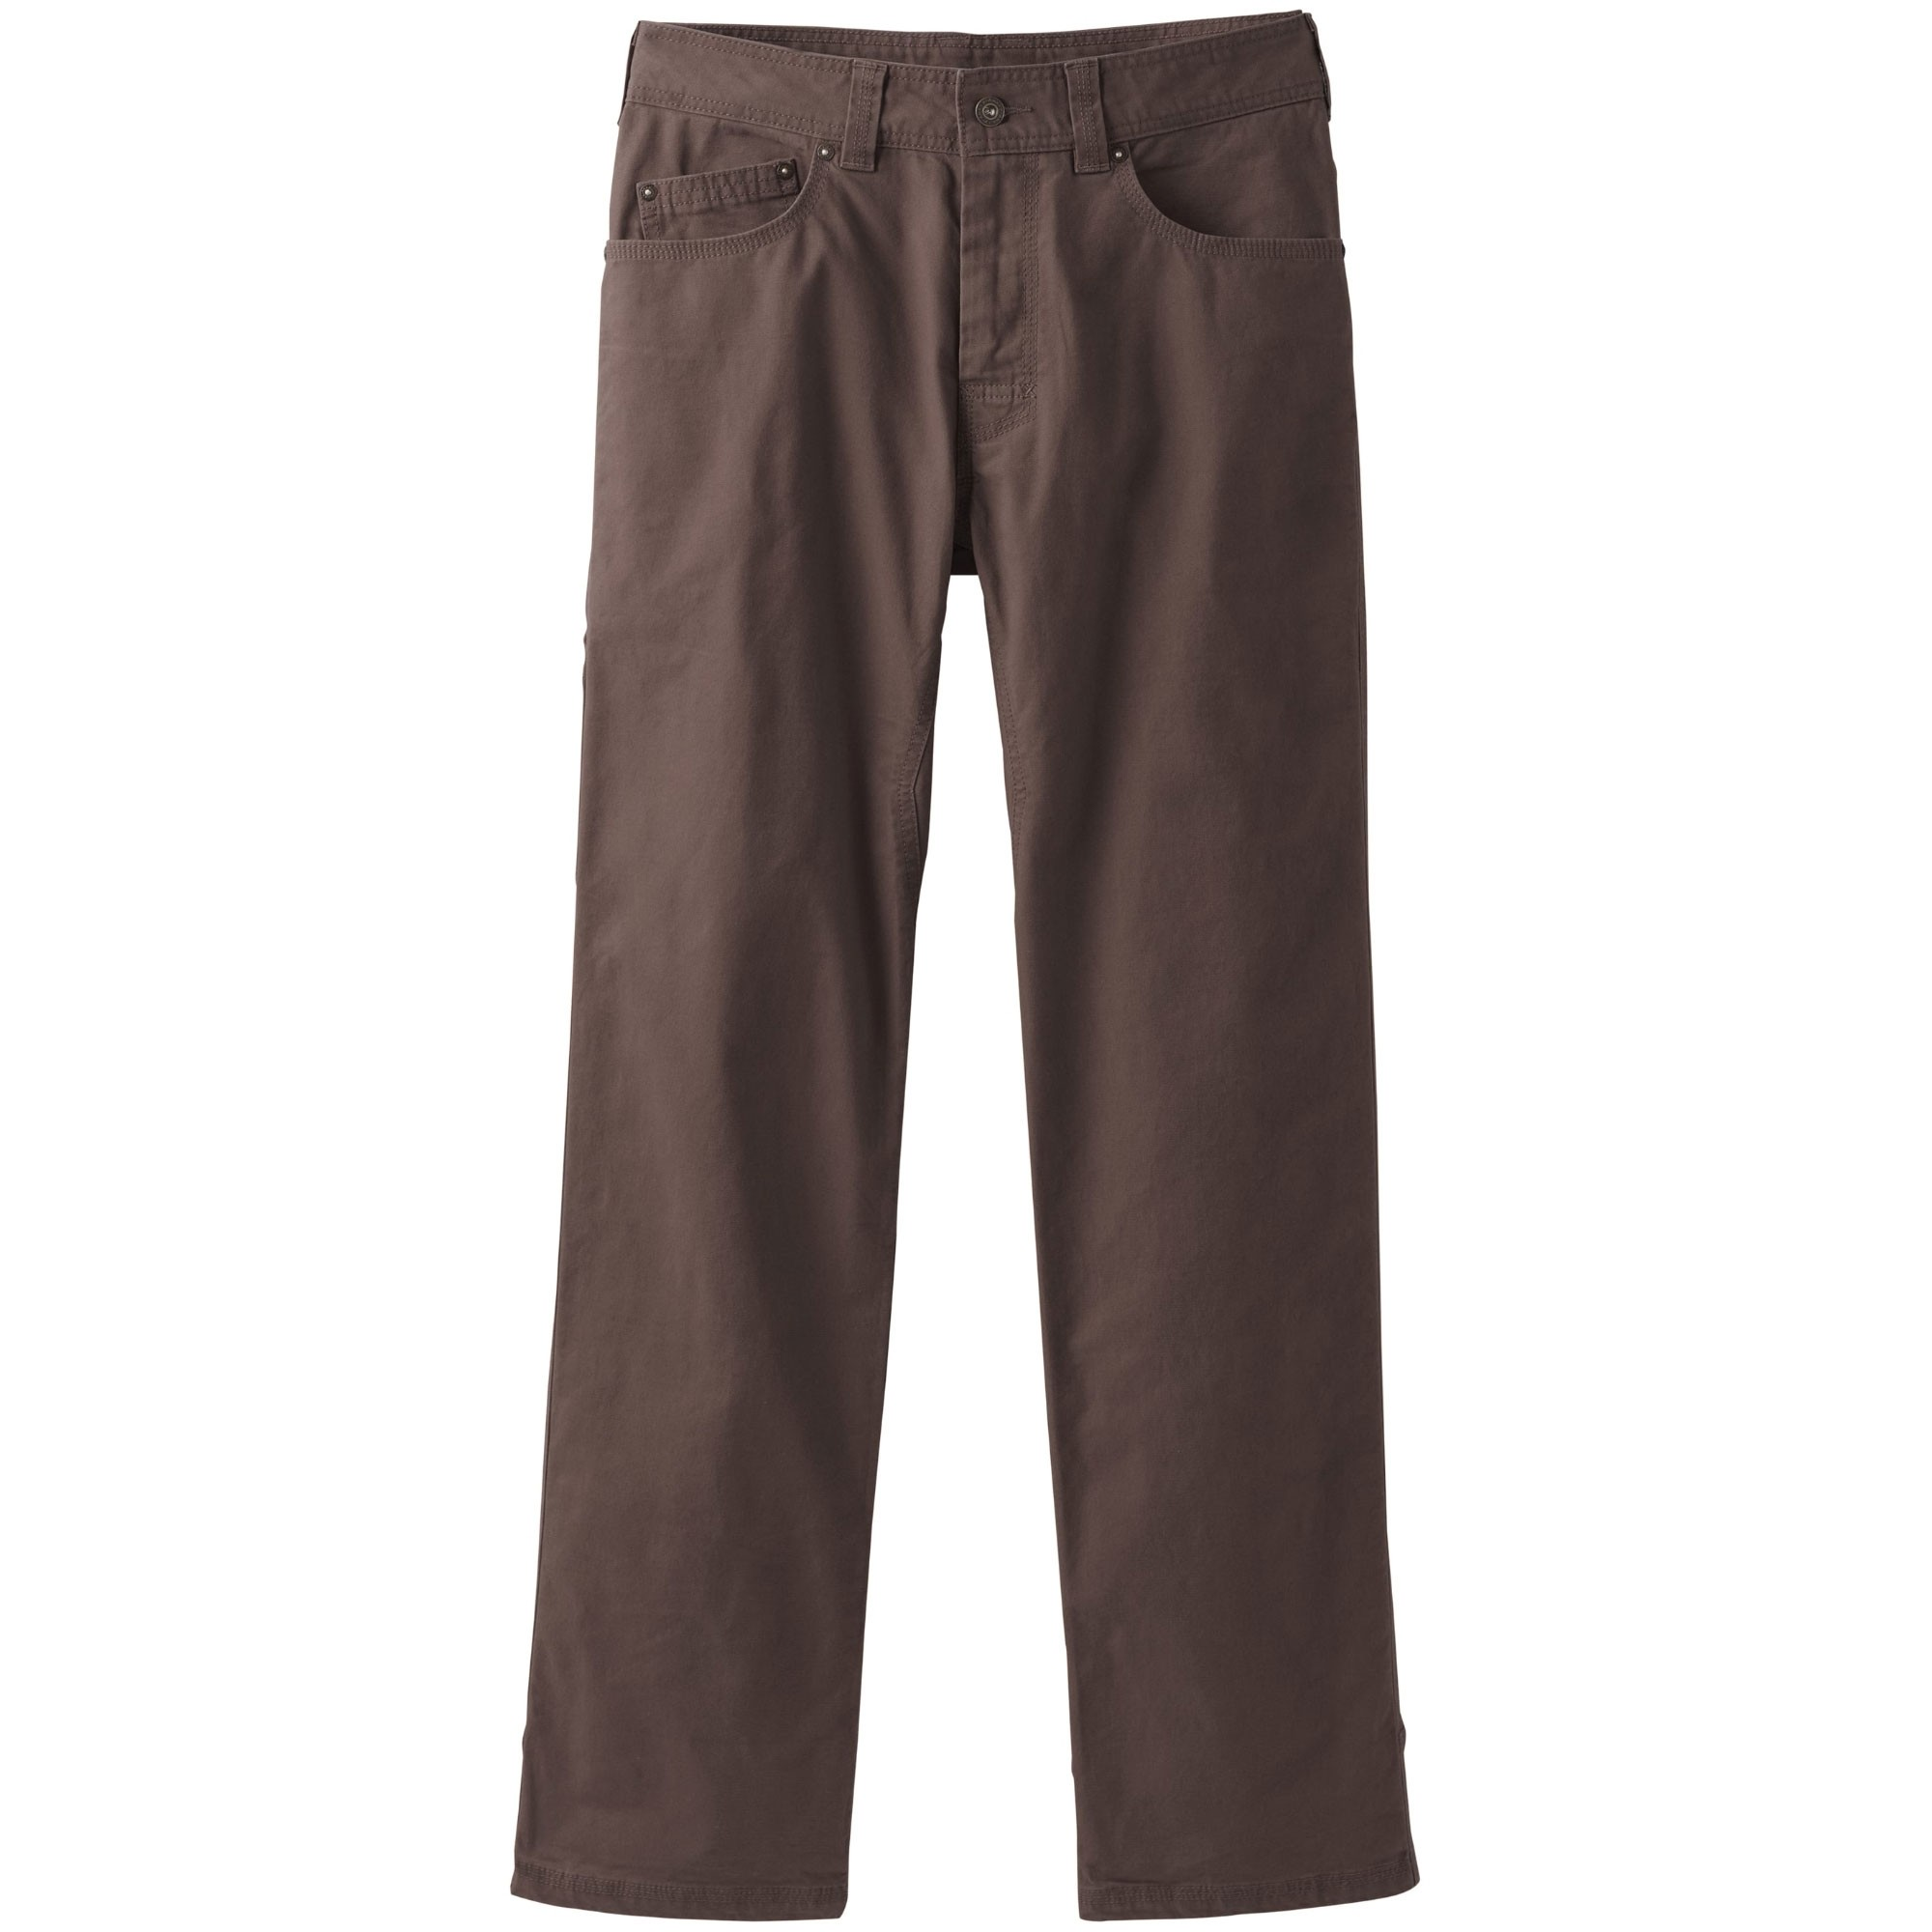 PrAna Bronson Pants - Acacia Brown